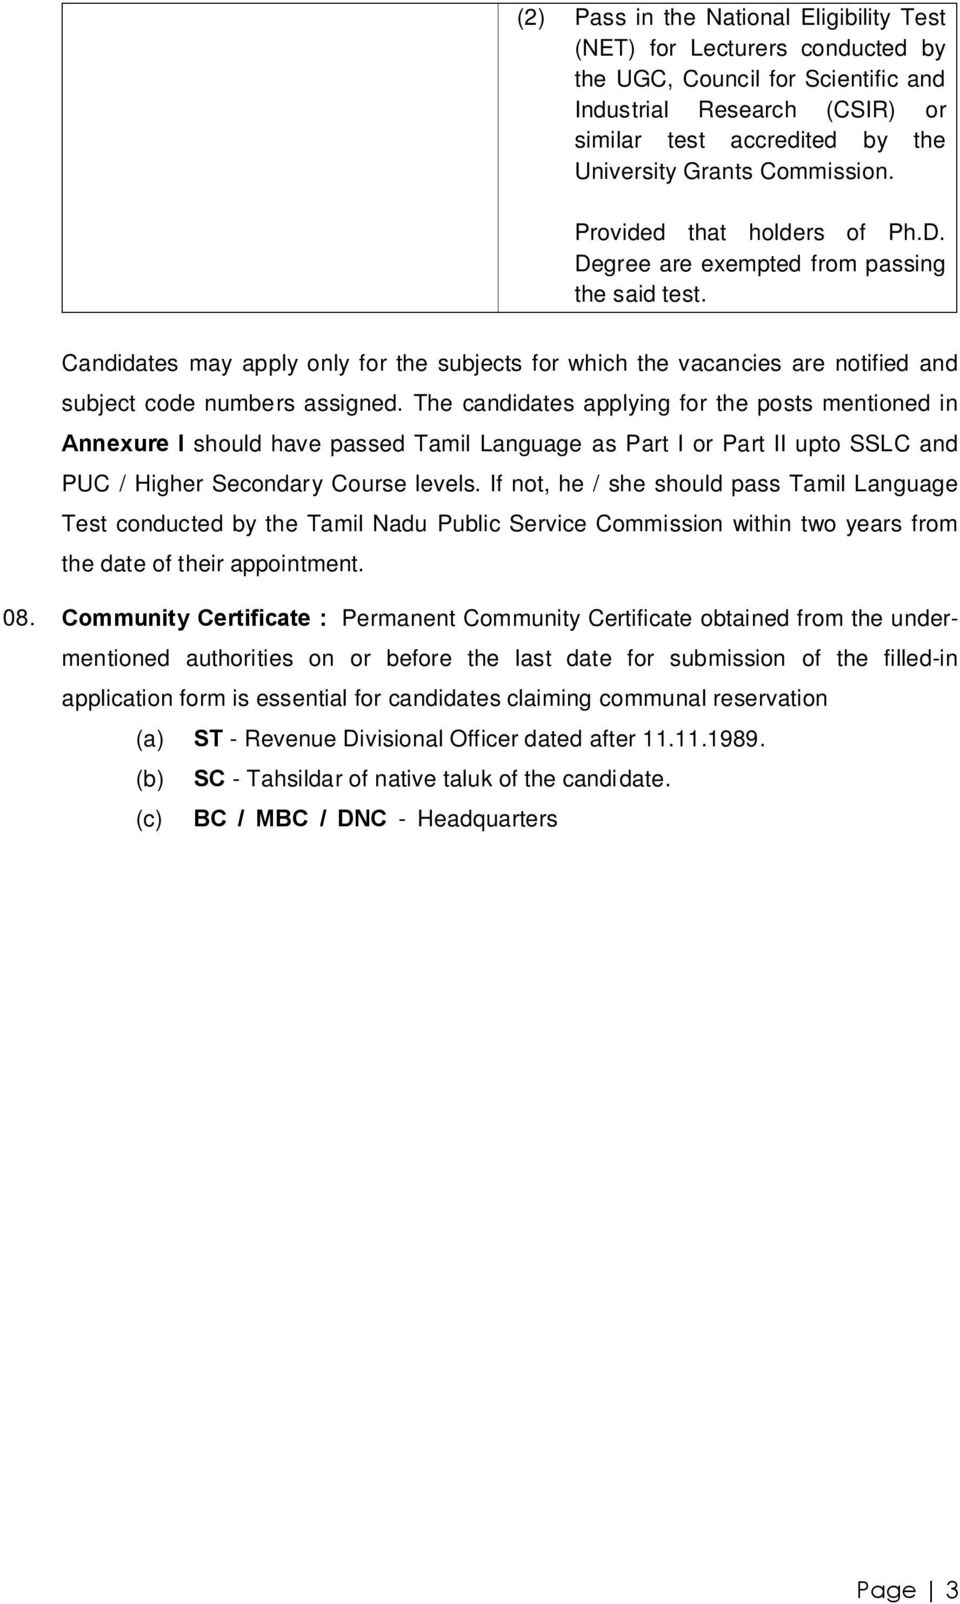 The cidates applying for the posts mentioned in Annexure I should have passed Tamil Language as Part I or Part II upto SSLC PUC / Higher Secondary Course levels.